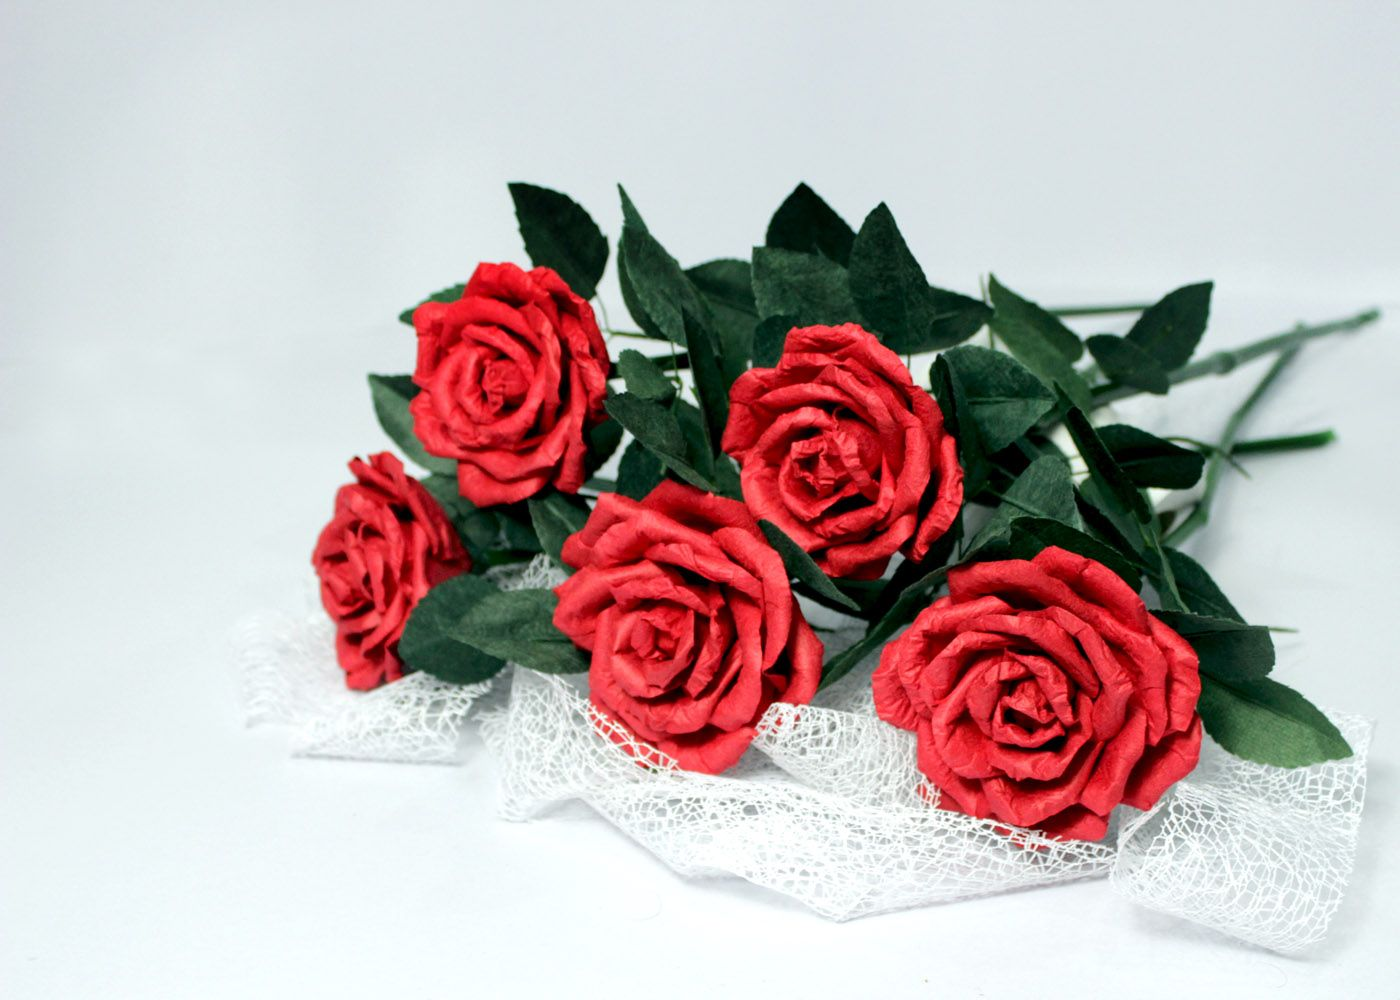 Beautiful Red Paper Roses Ive Just Made Them For Home Decor For